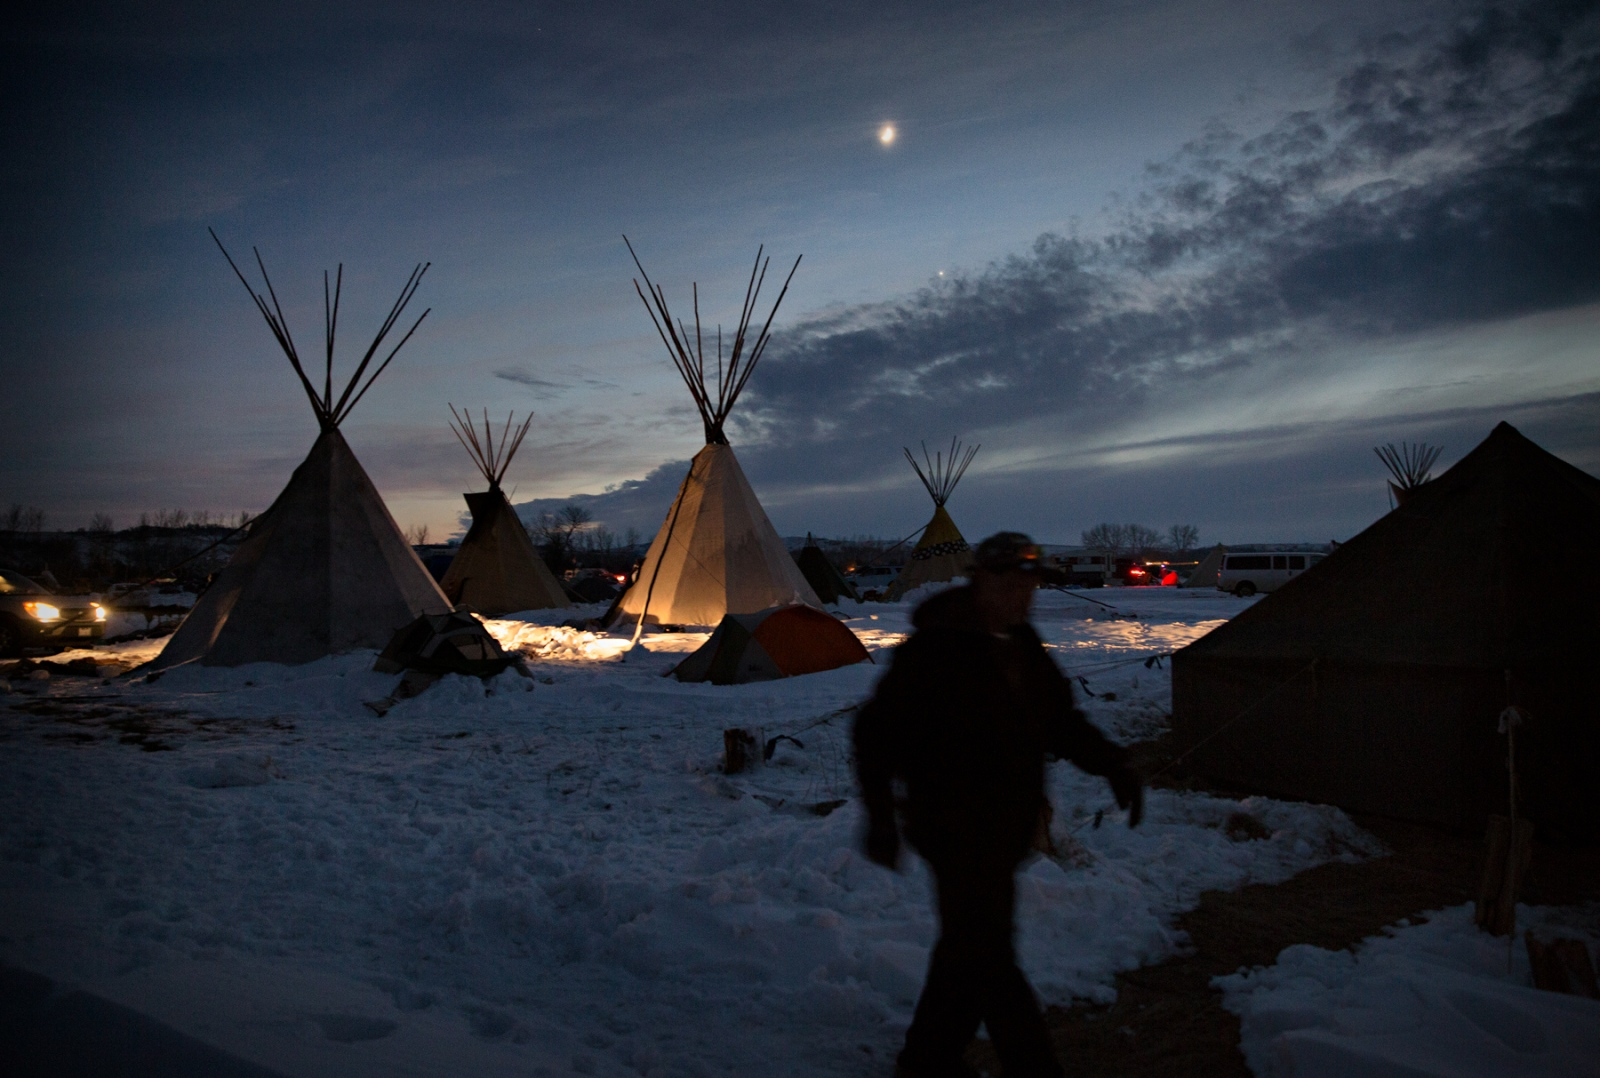 The moonlight covers the Camp after the sun down on an almost clear night during a frigid November night. The Camp's atmosphere was happy after the Army Core of Engineers issued a decision to halt the Dakota Access Pipe Line and denied the easement sought by the oil company to drill under the Missouri River. The victory did not survive the election of Donald Trump as the 45th President of the United States.